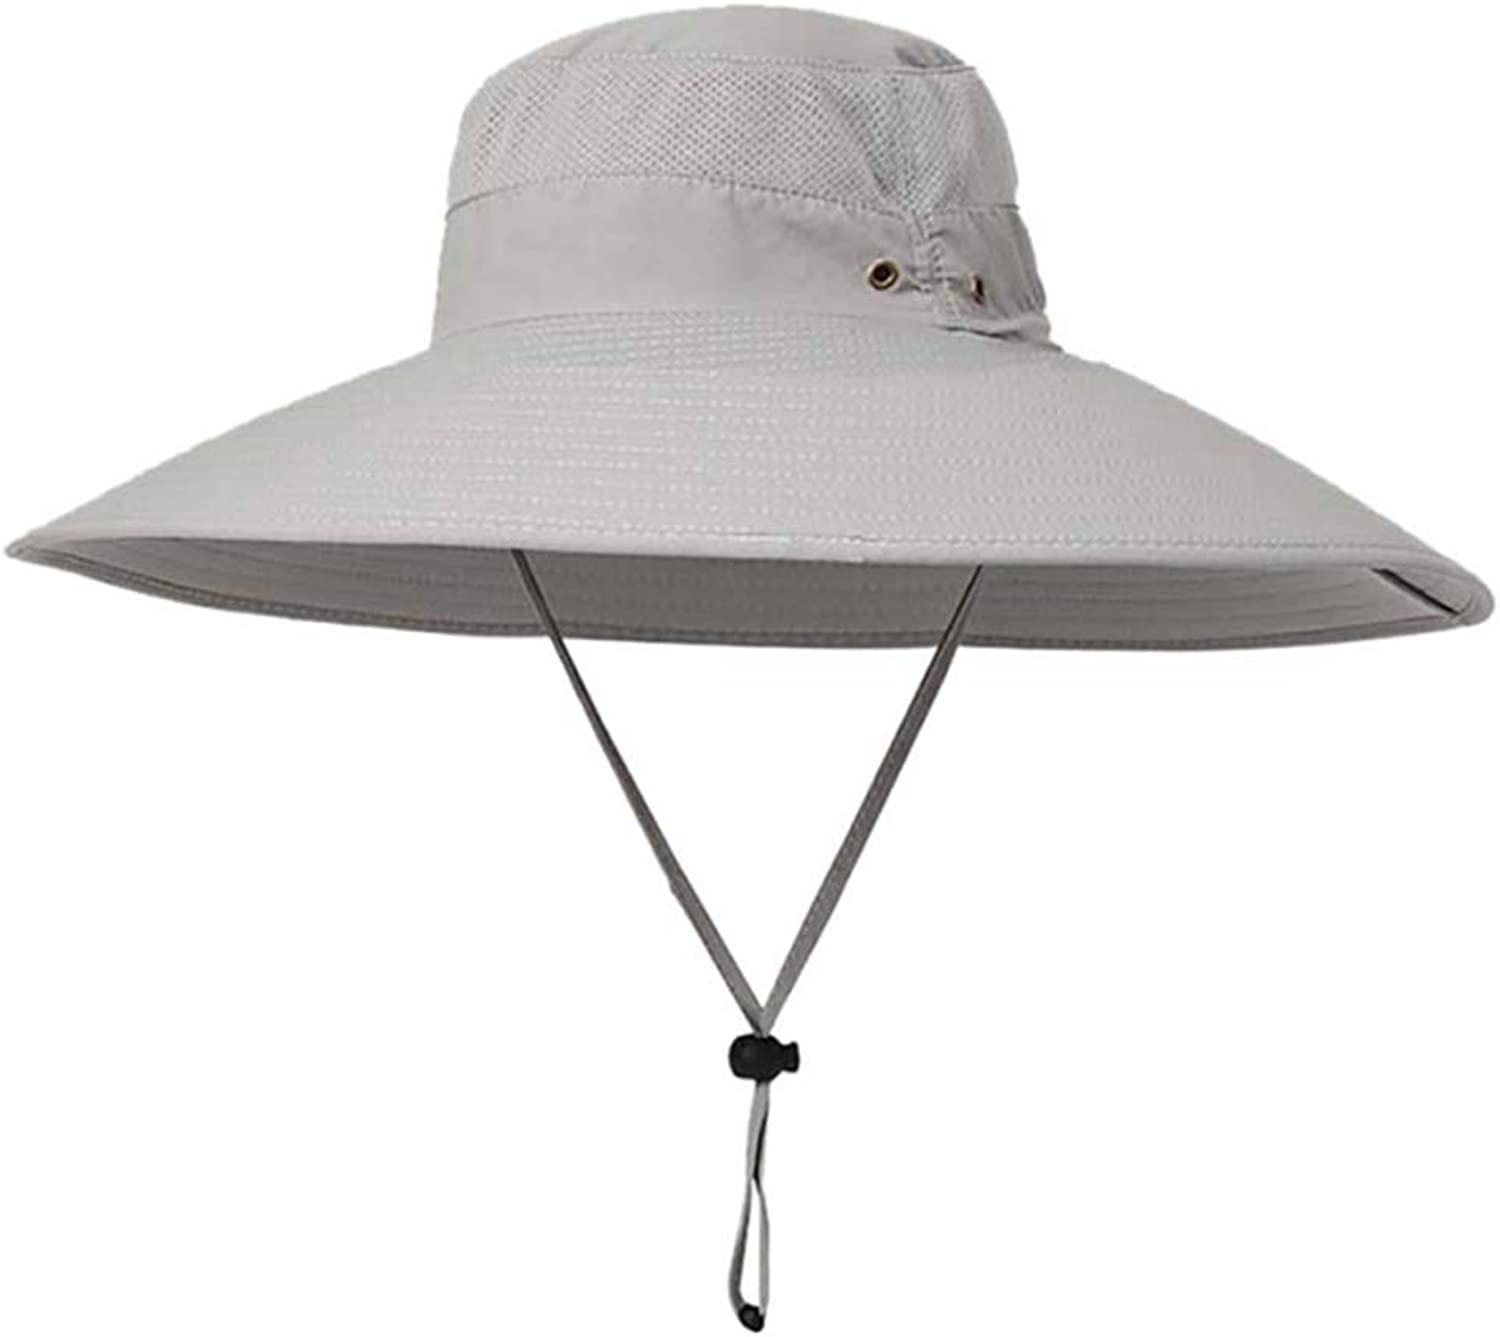 XDH-RTS 6.0 in Super Large Wide Brim Sun Hat Breathable Sun Predection Fishing Hiking Cap UPF 50+ Quick Dry Visors Men Women